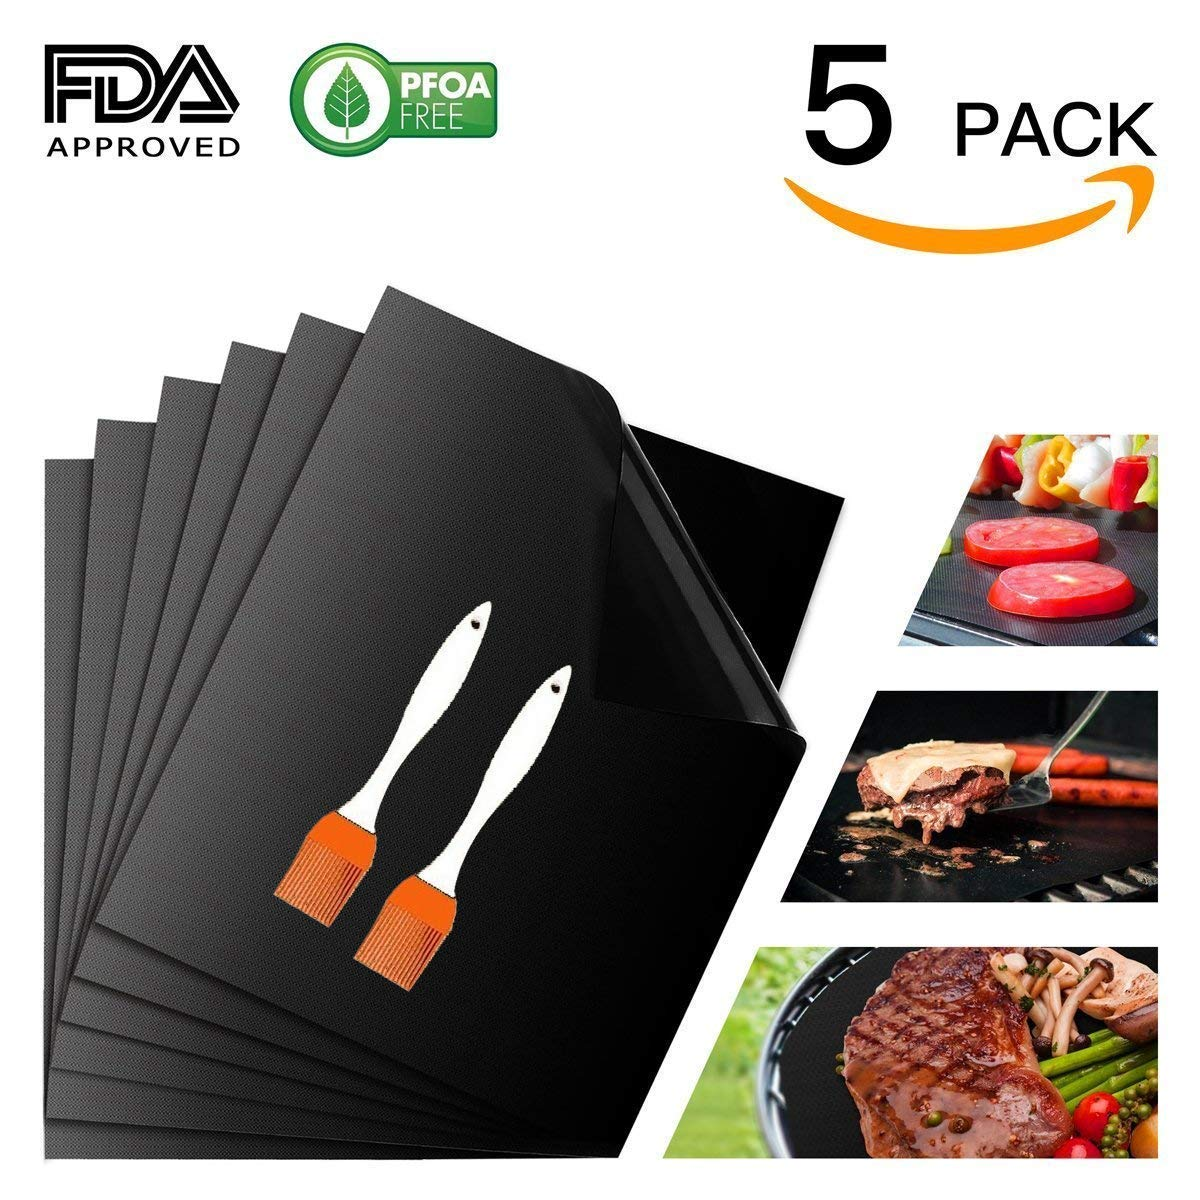 Vstyle Grill Mat, BBQ Grill Mat Baking Mat Set of 5, 100% Nonstick FDA Approved, Reusable and Easy to Clean - One Year Warranty (black) (40)